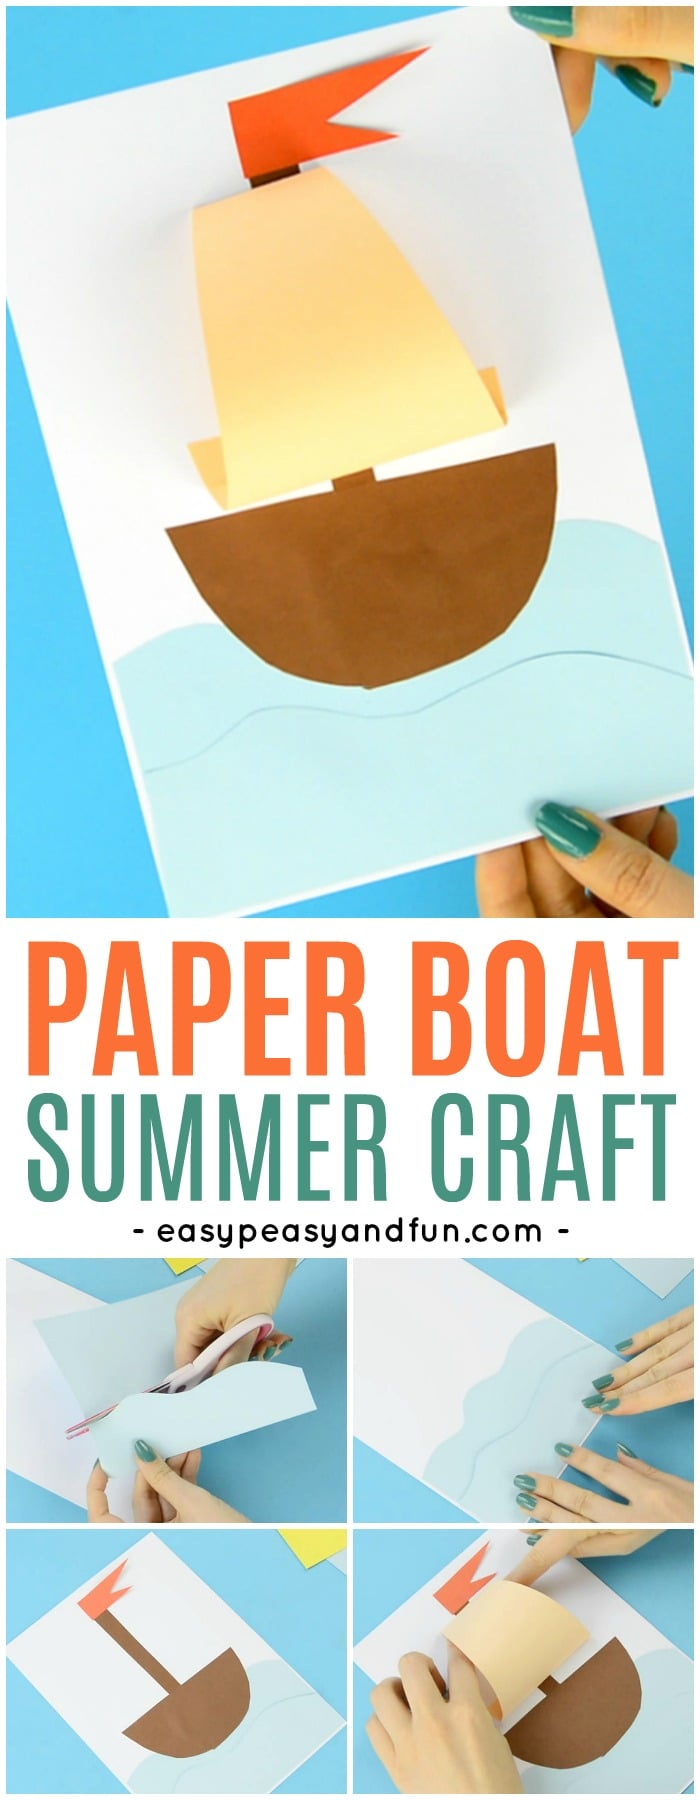 Fun And Simple Paper Boat Craft for Kids to Make